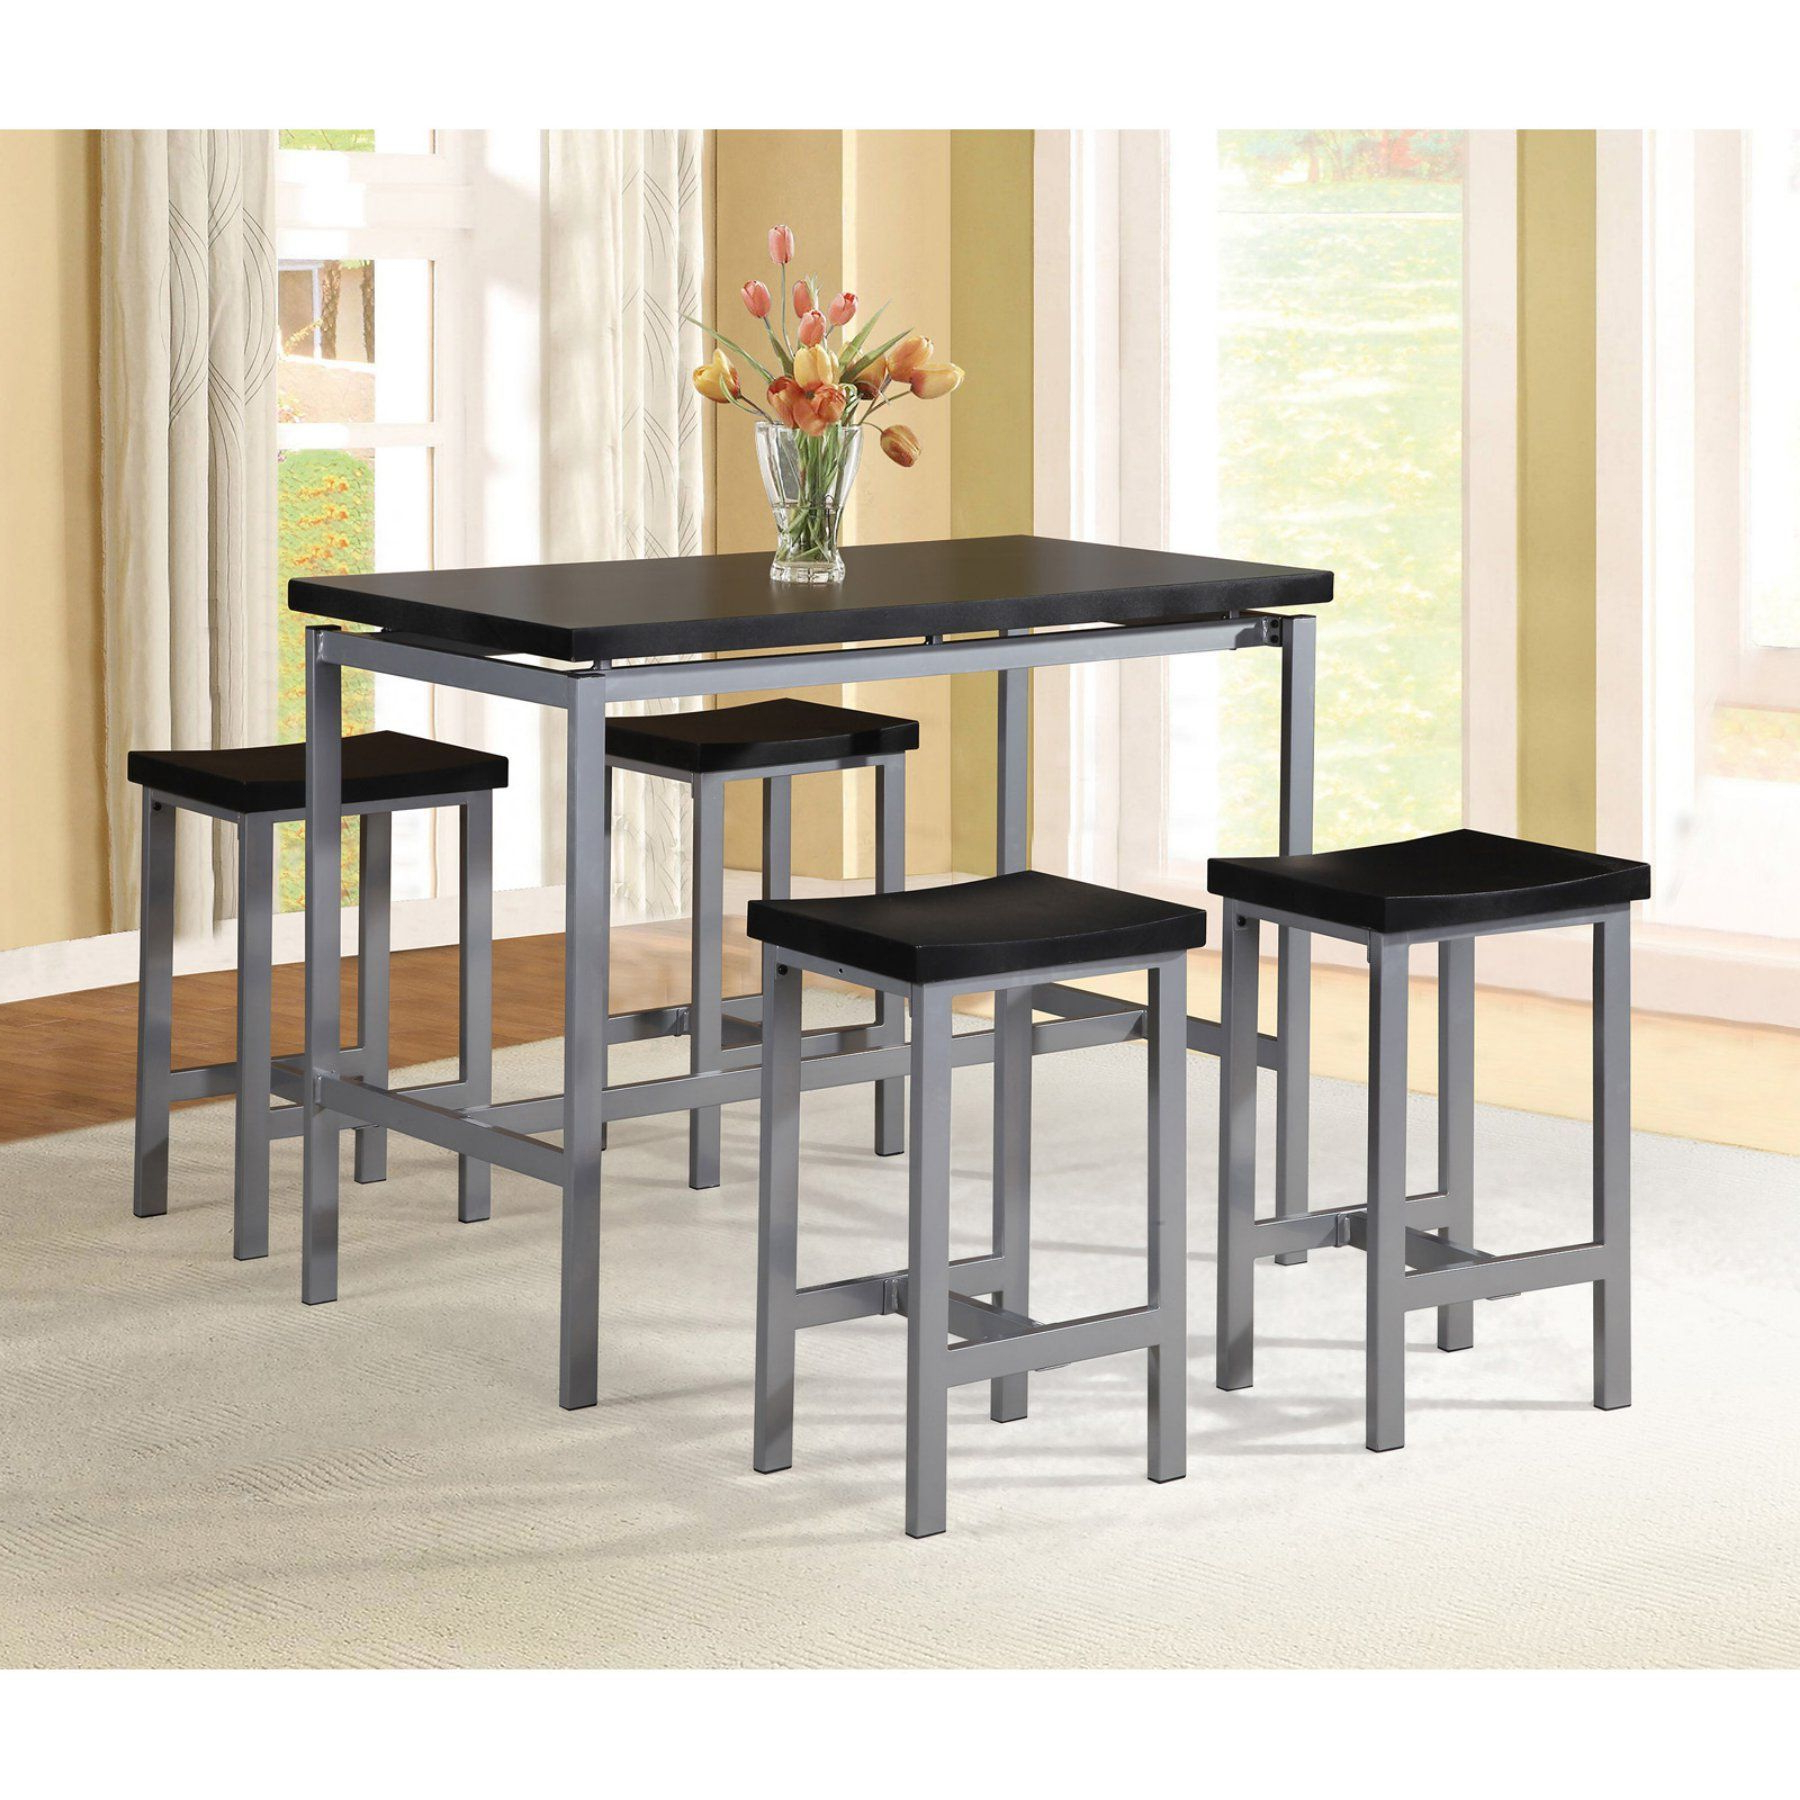 Preferred Milton Greens Stars Aaron 5 Piece Counter Height Dining Set – 7847 For Denzel 5 Piece Counter Height Breakfast Nook Dining Sets (View 9 of 25)